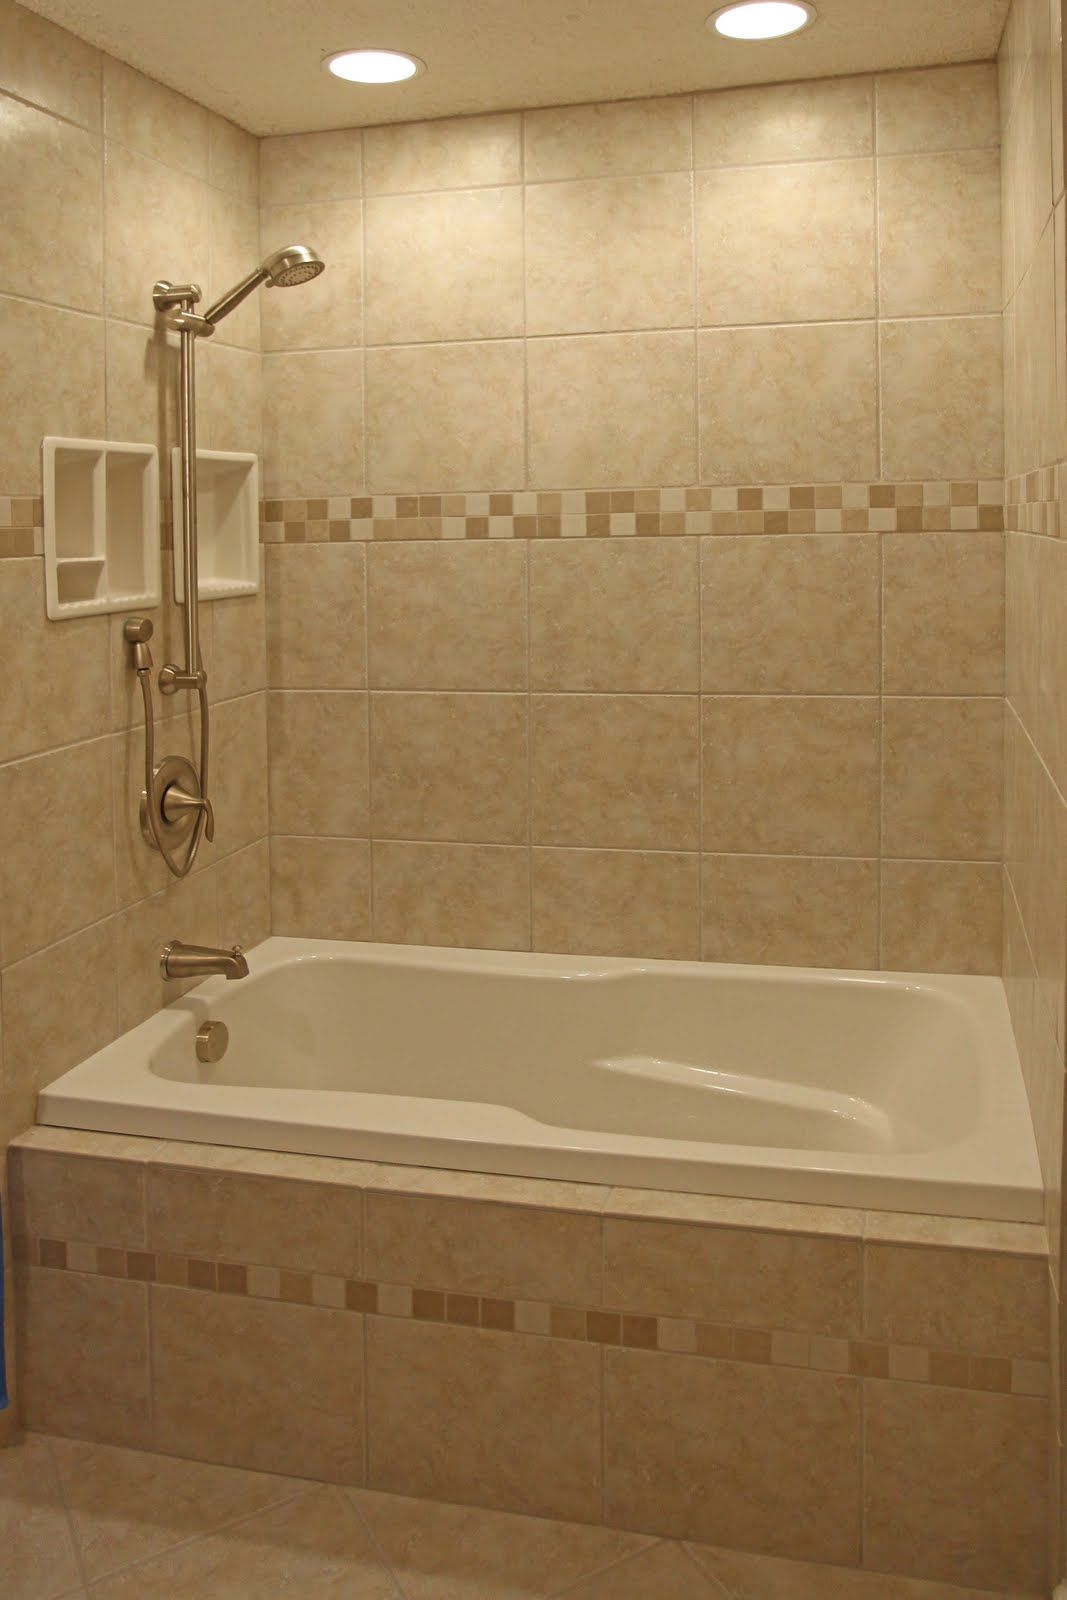 Bathroom Design Ideas Tile beautiful bathroom tile design ideas images ideas - decorating